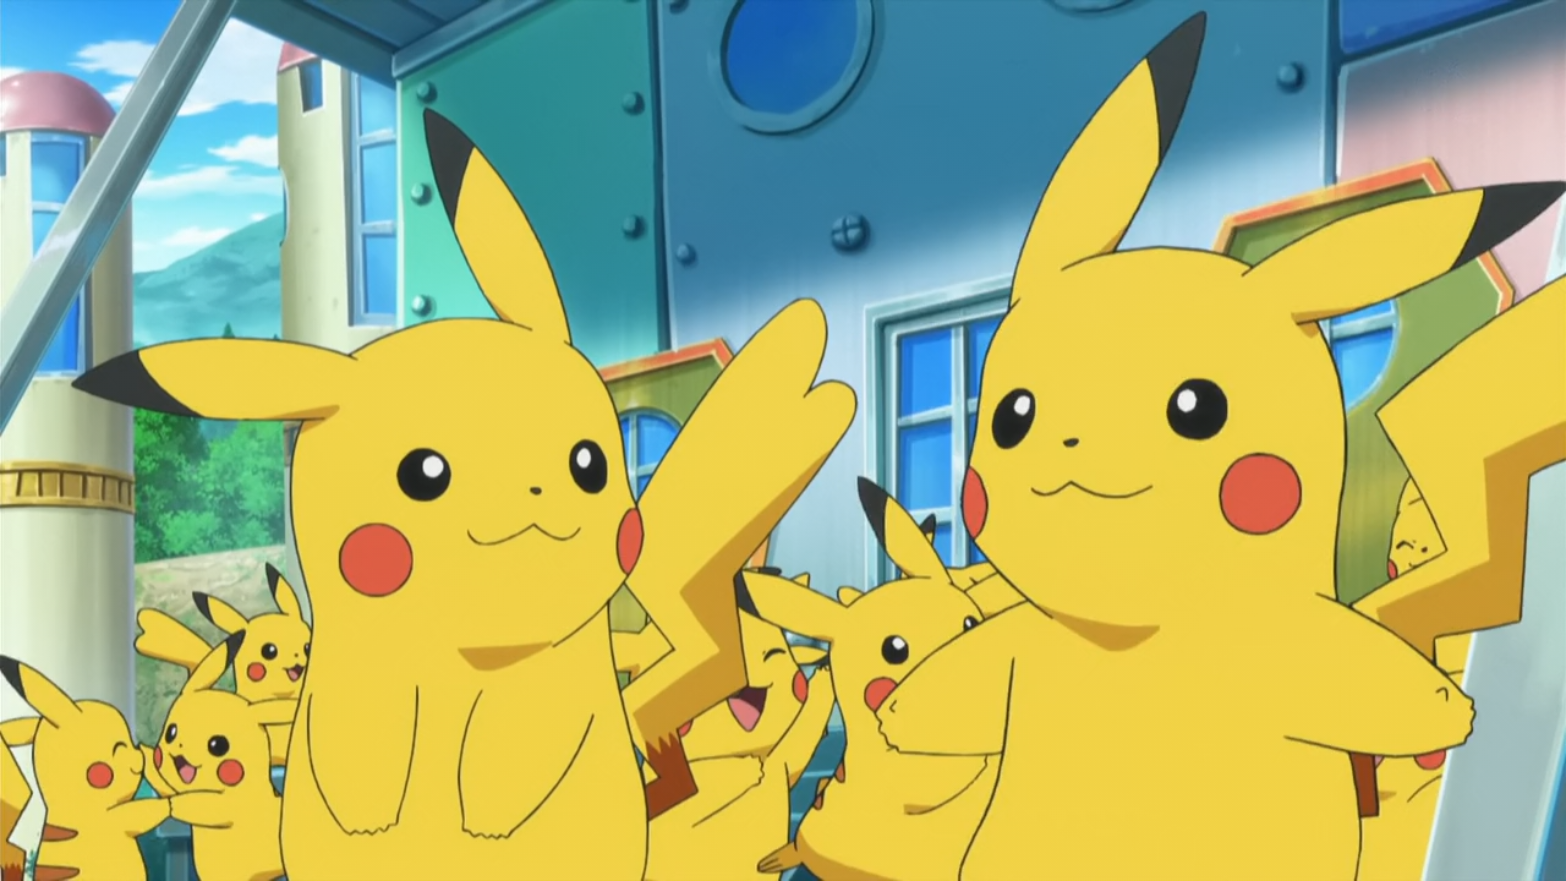 Frank had many Pikachu, who acted as actors, from which five wore matching costumes.